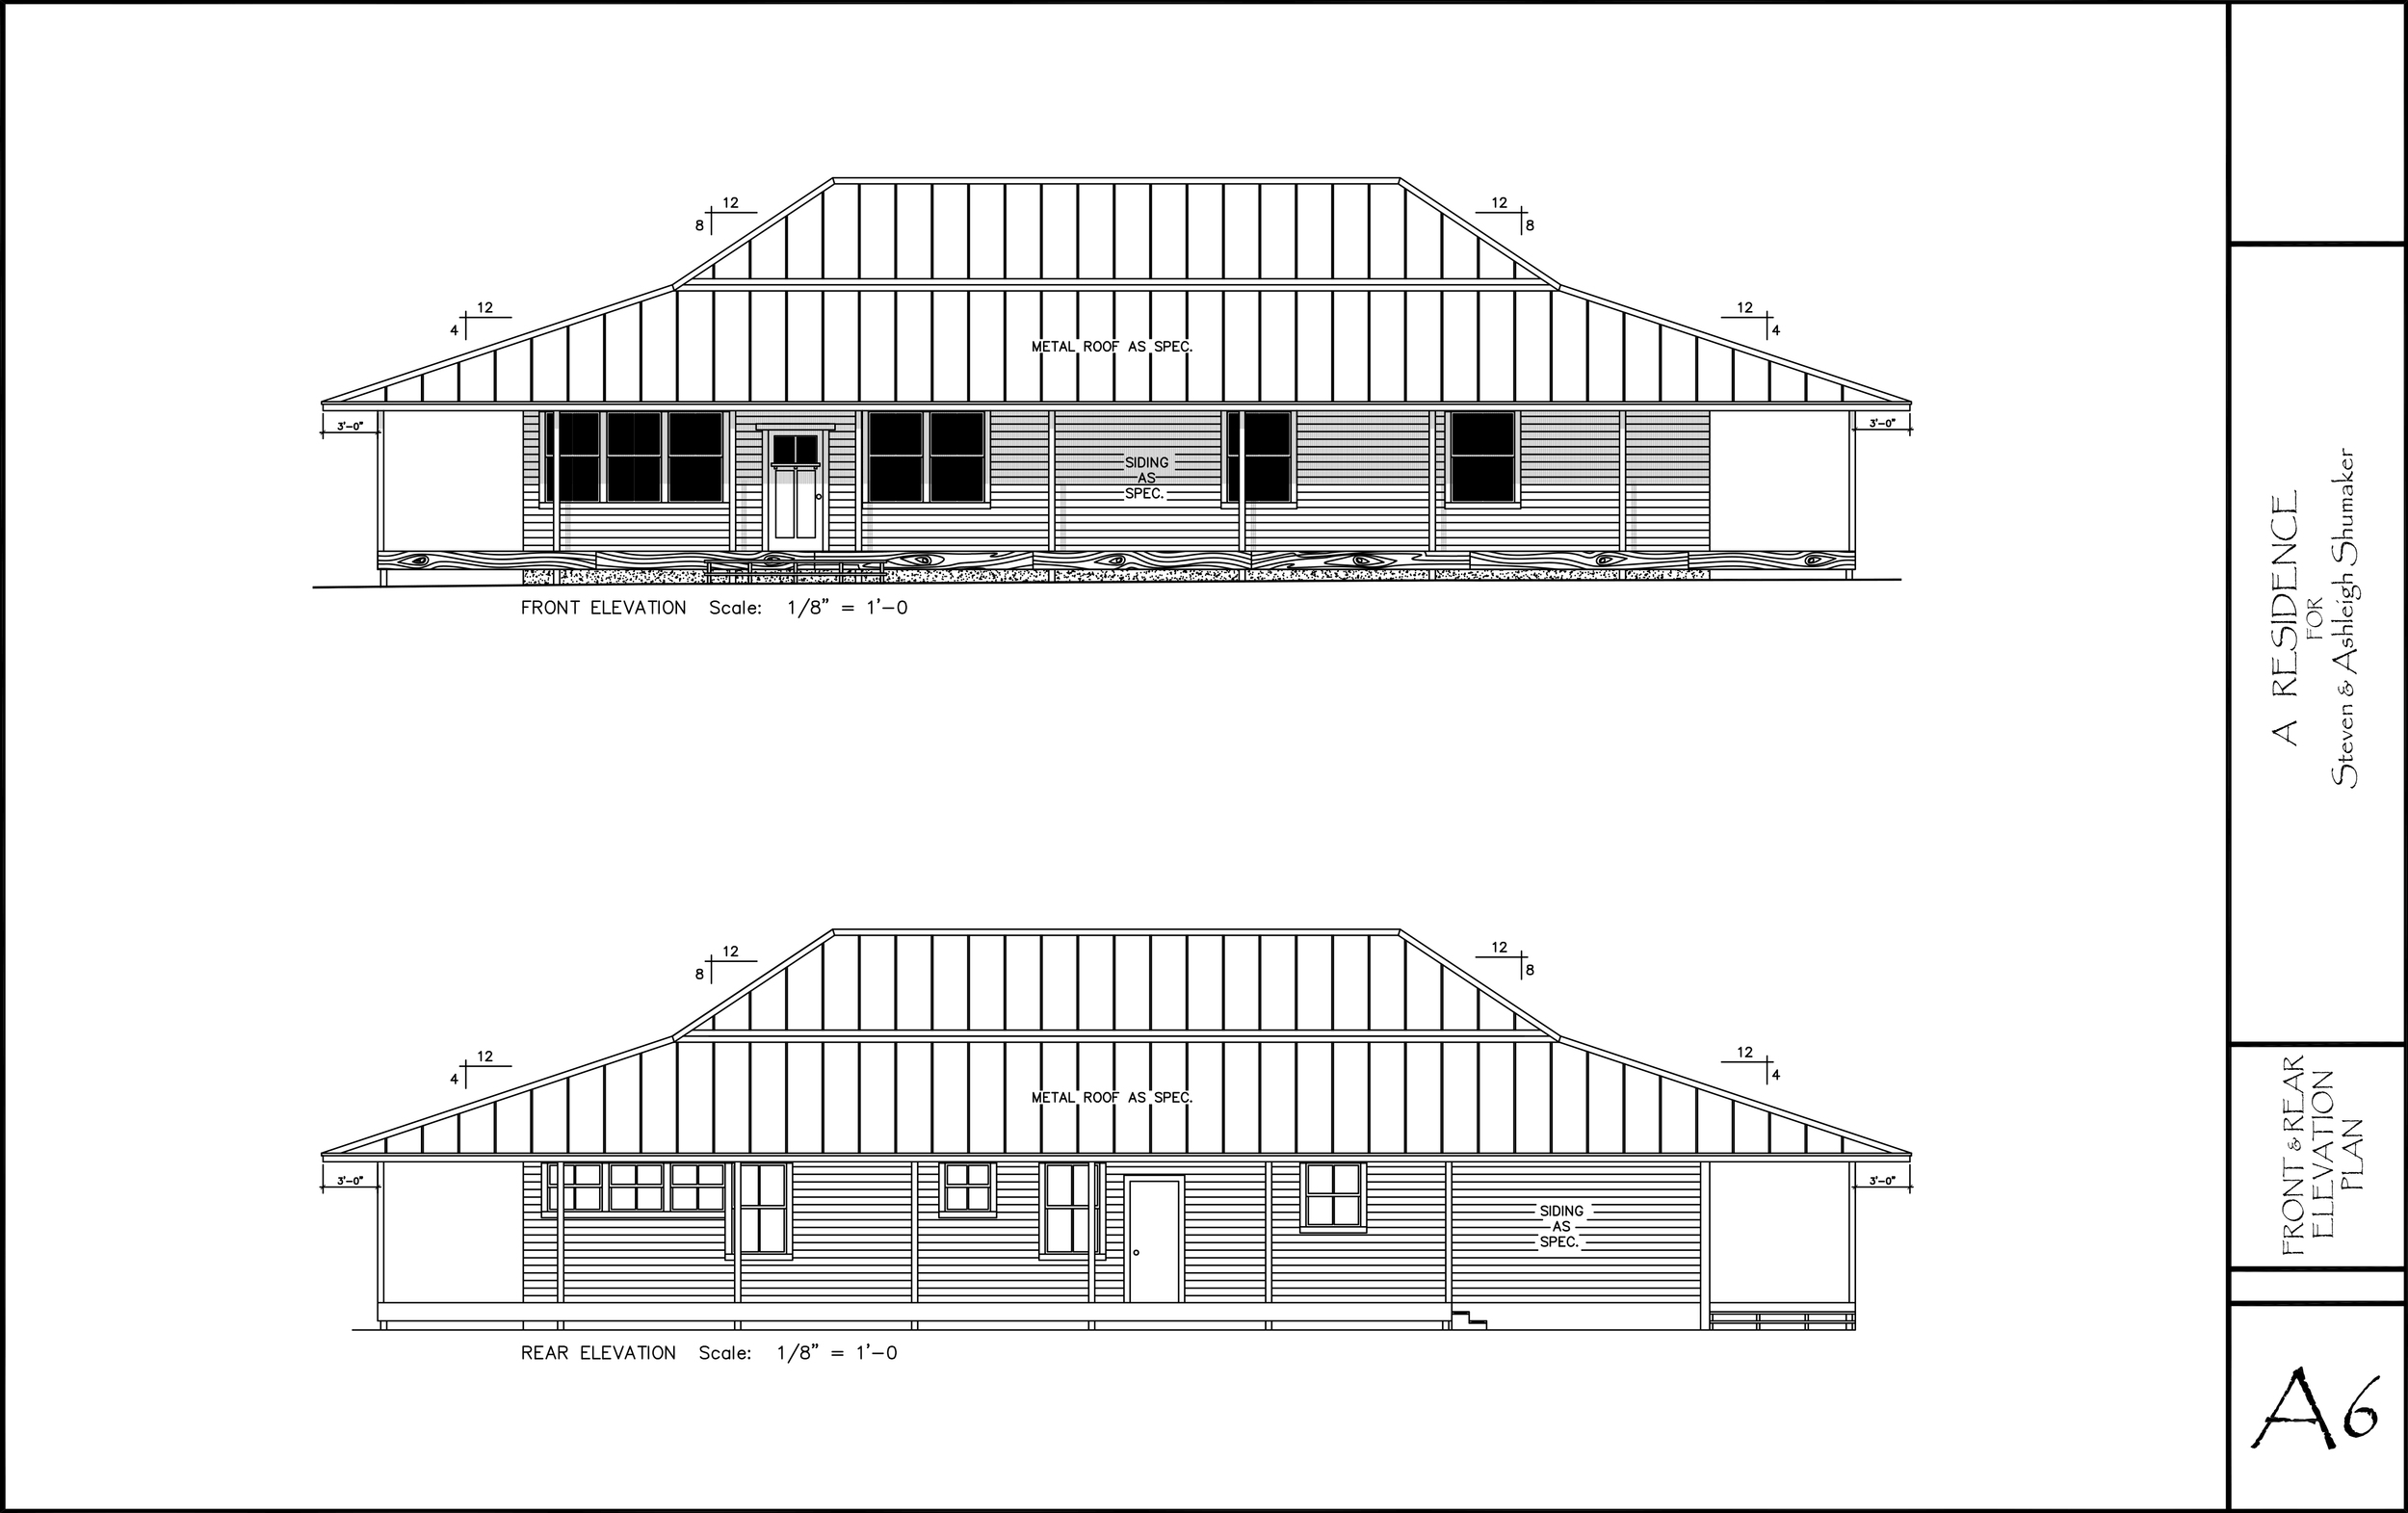 Architectural — ClearCAD Solutions LLC on ranch style home elevations, ranch house elevation drawings, french country corner lot house plans, condominium elevation plans, ranch home design plans, ranch house plan 97370, church elevation plans, ranch exterior plans, rancher house plans, cabin elevation plans, hall elevation plans, ranch house site plan, one story duplex house plans, ranch house curb appeal ideas front porch, home elevation plans, u house plans, ranch home porch gable entry, ranch house floor, ranch mansion plans,